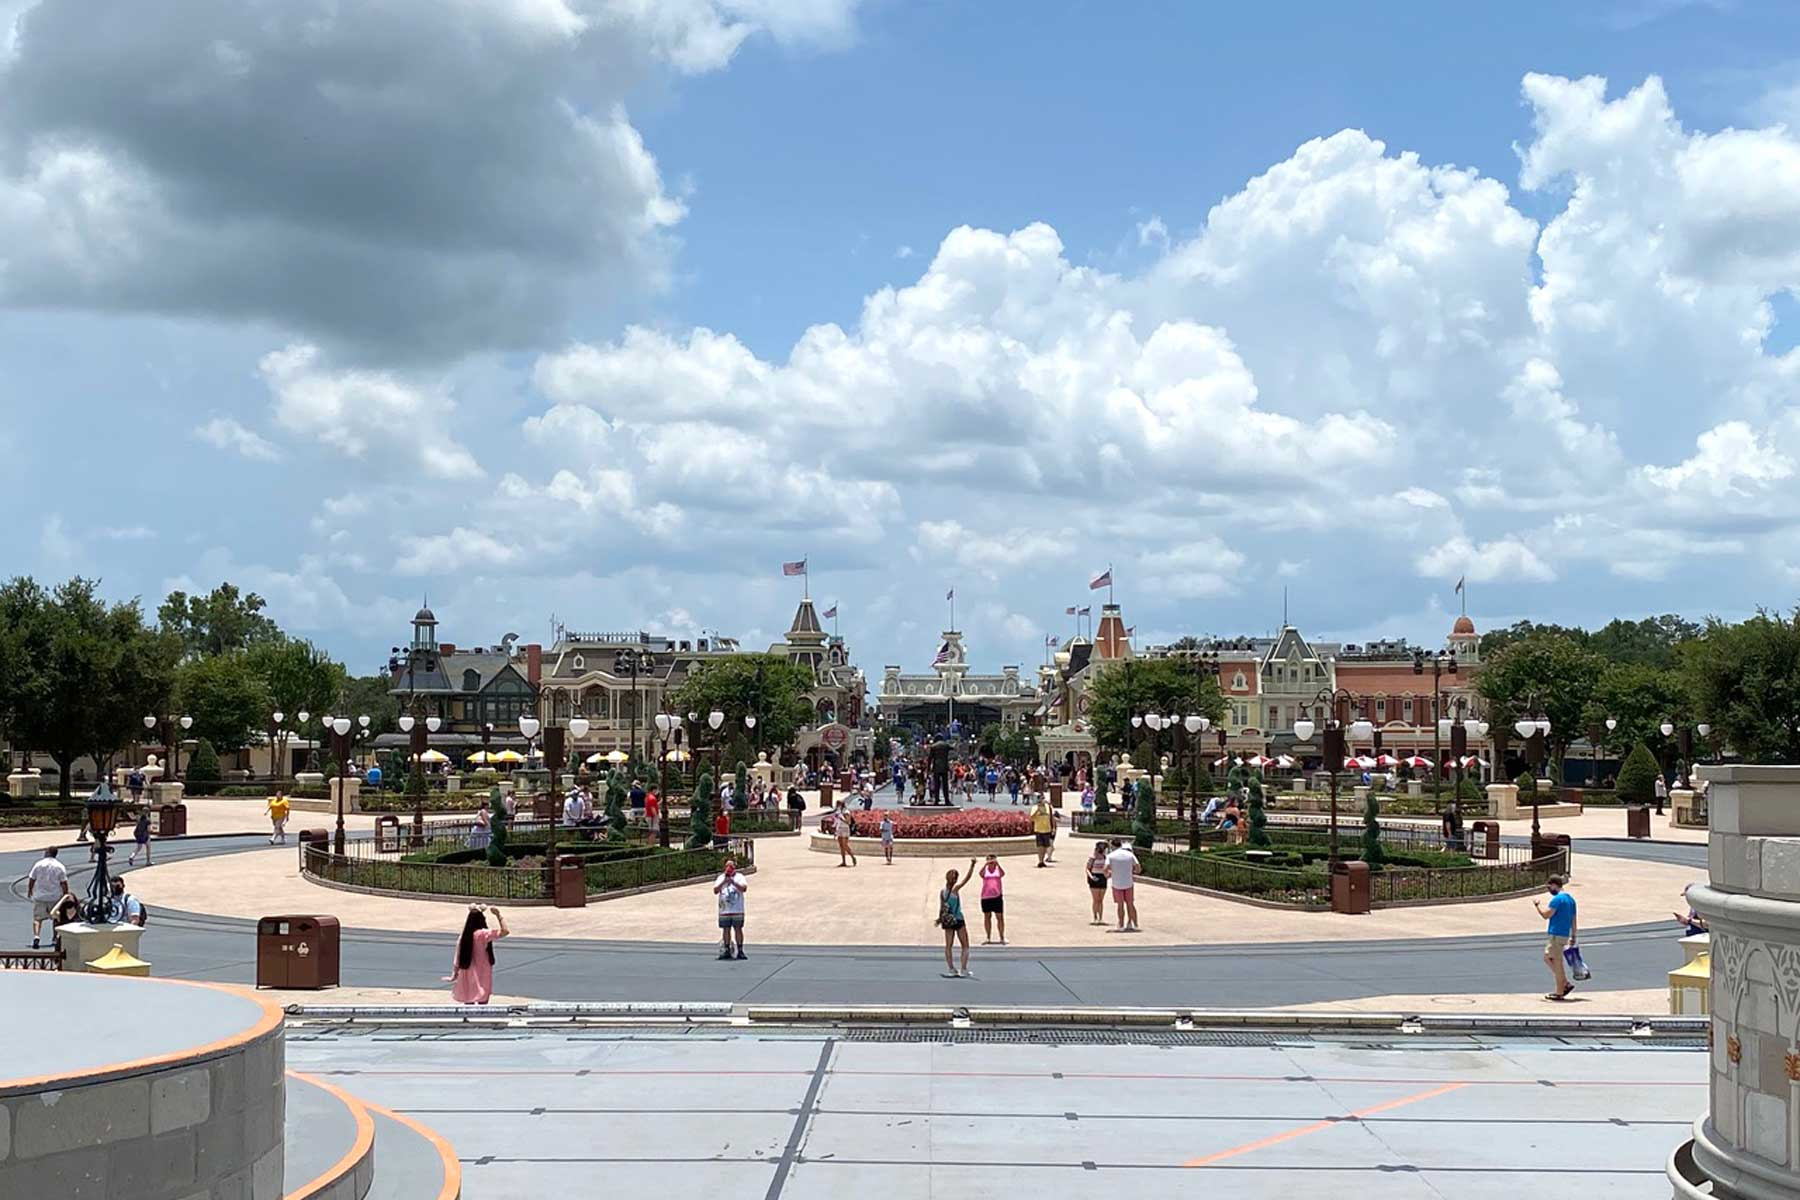 Inside the Opening of Walt Disney World amid Global Pandemic